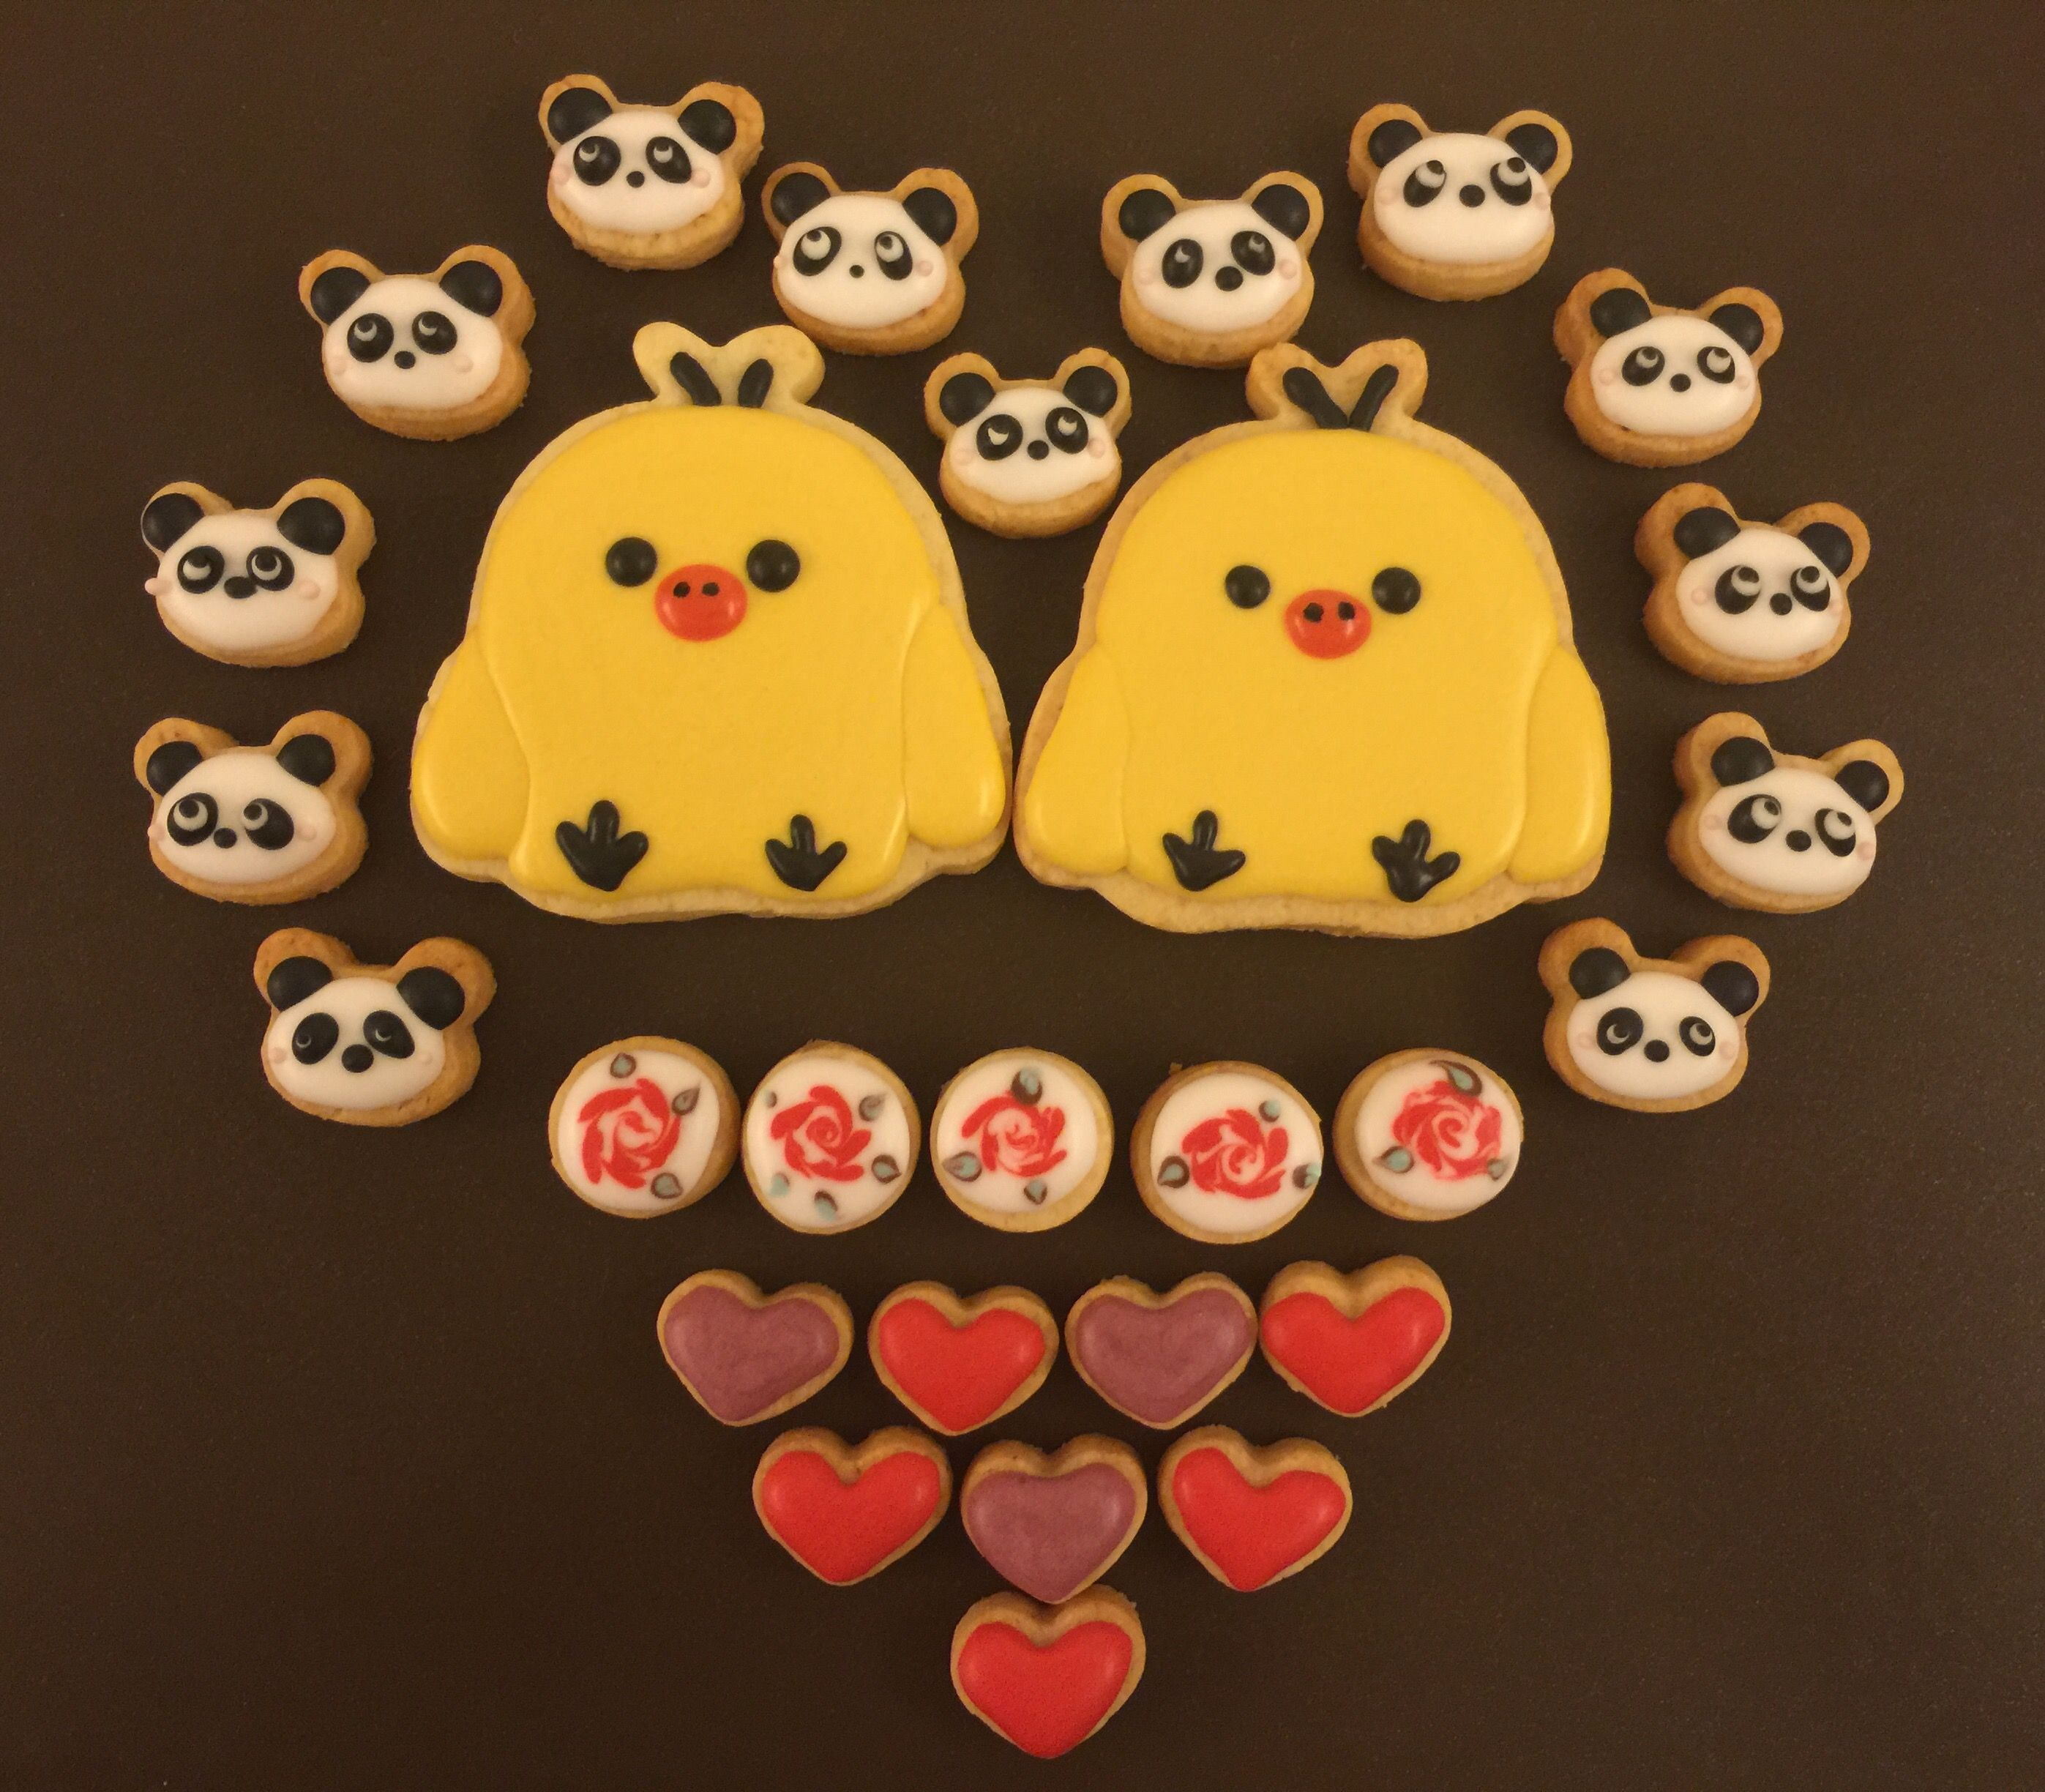 Cute cookies - by S.Y.